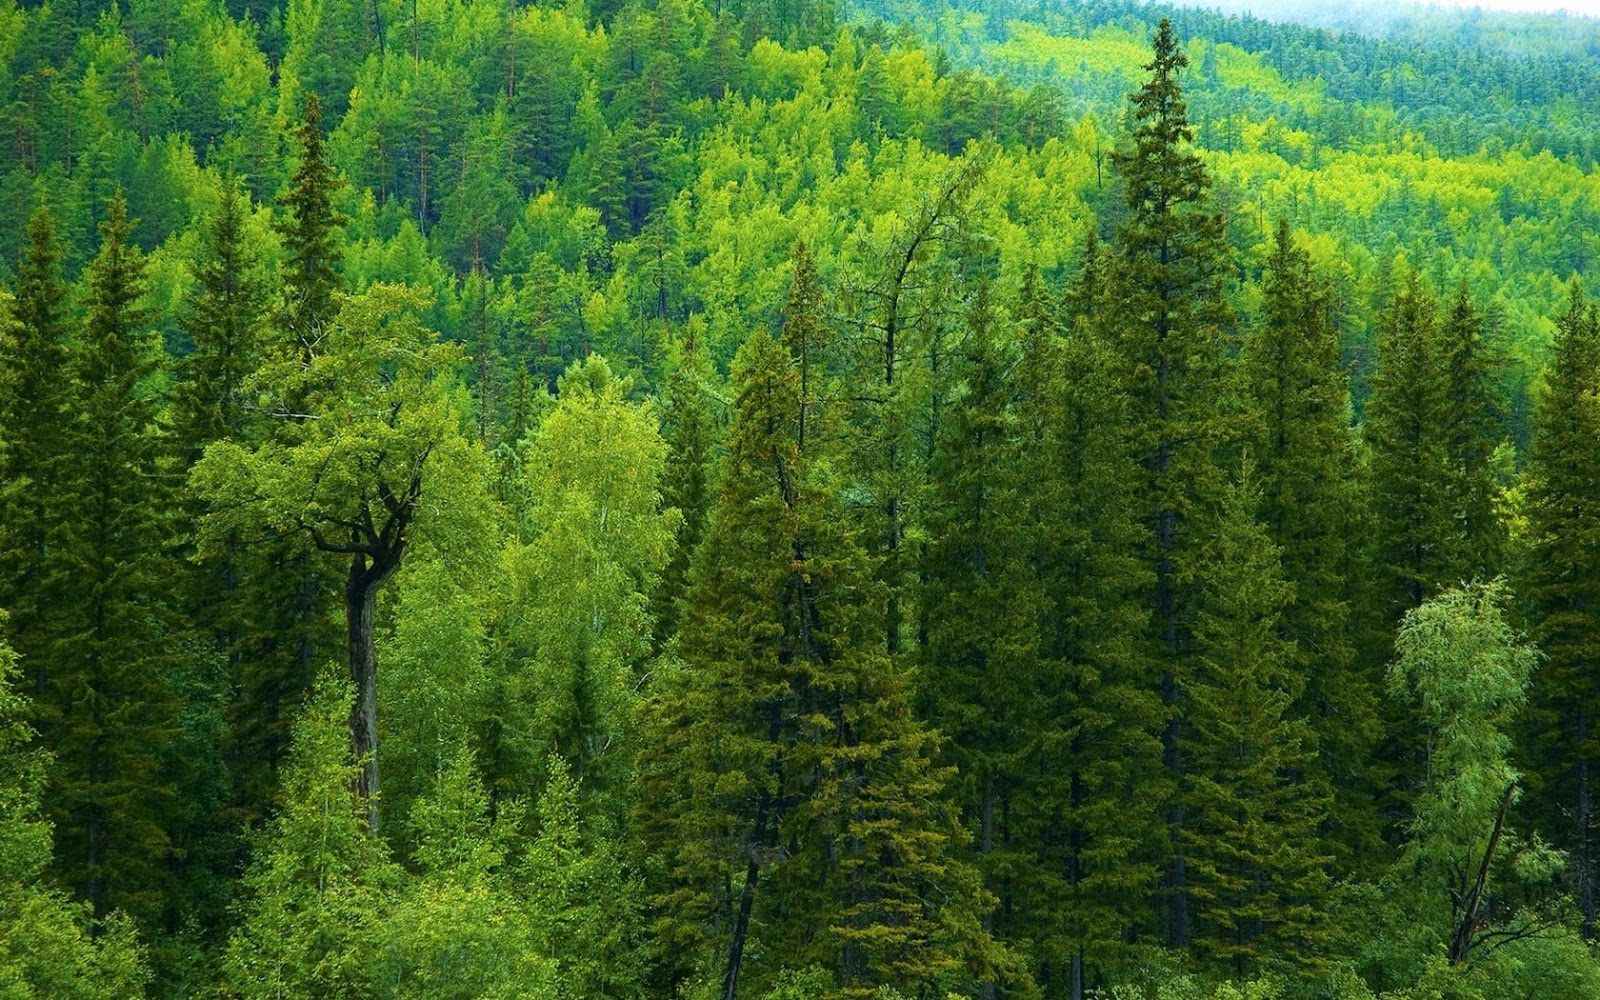 amazon_forest_trees-wide.jpg